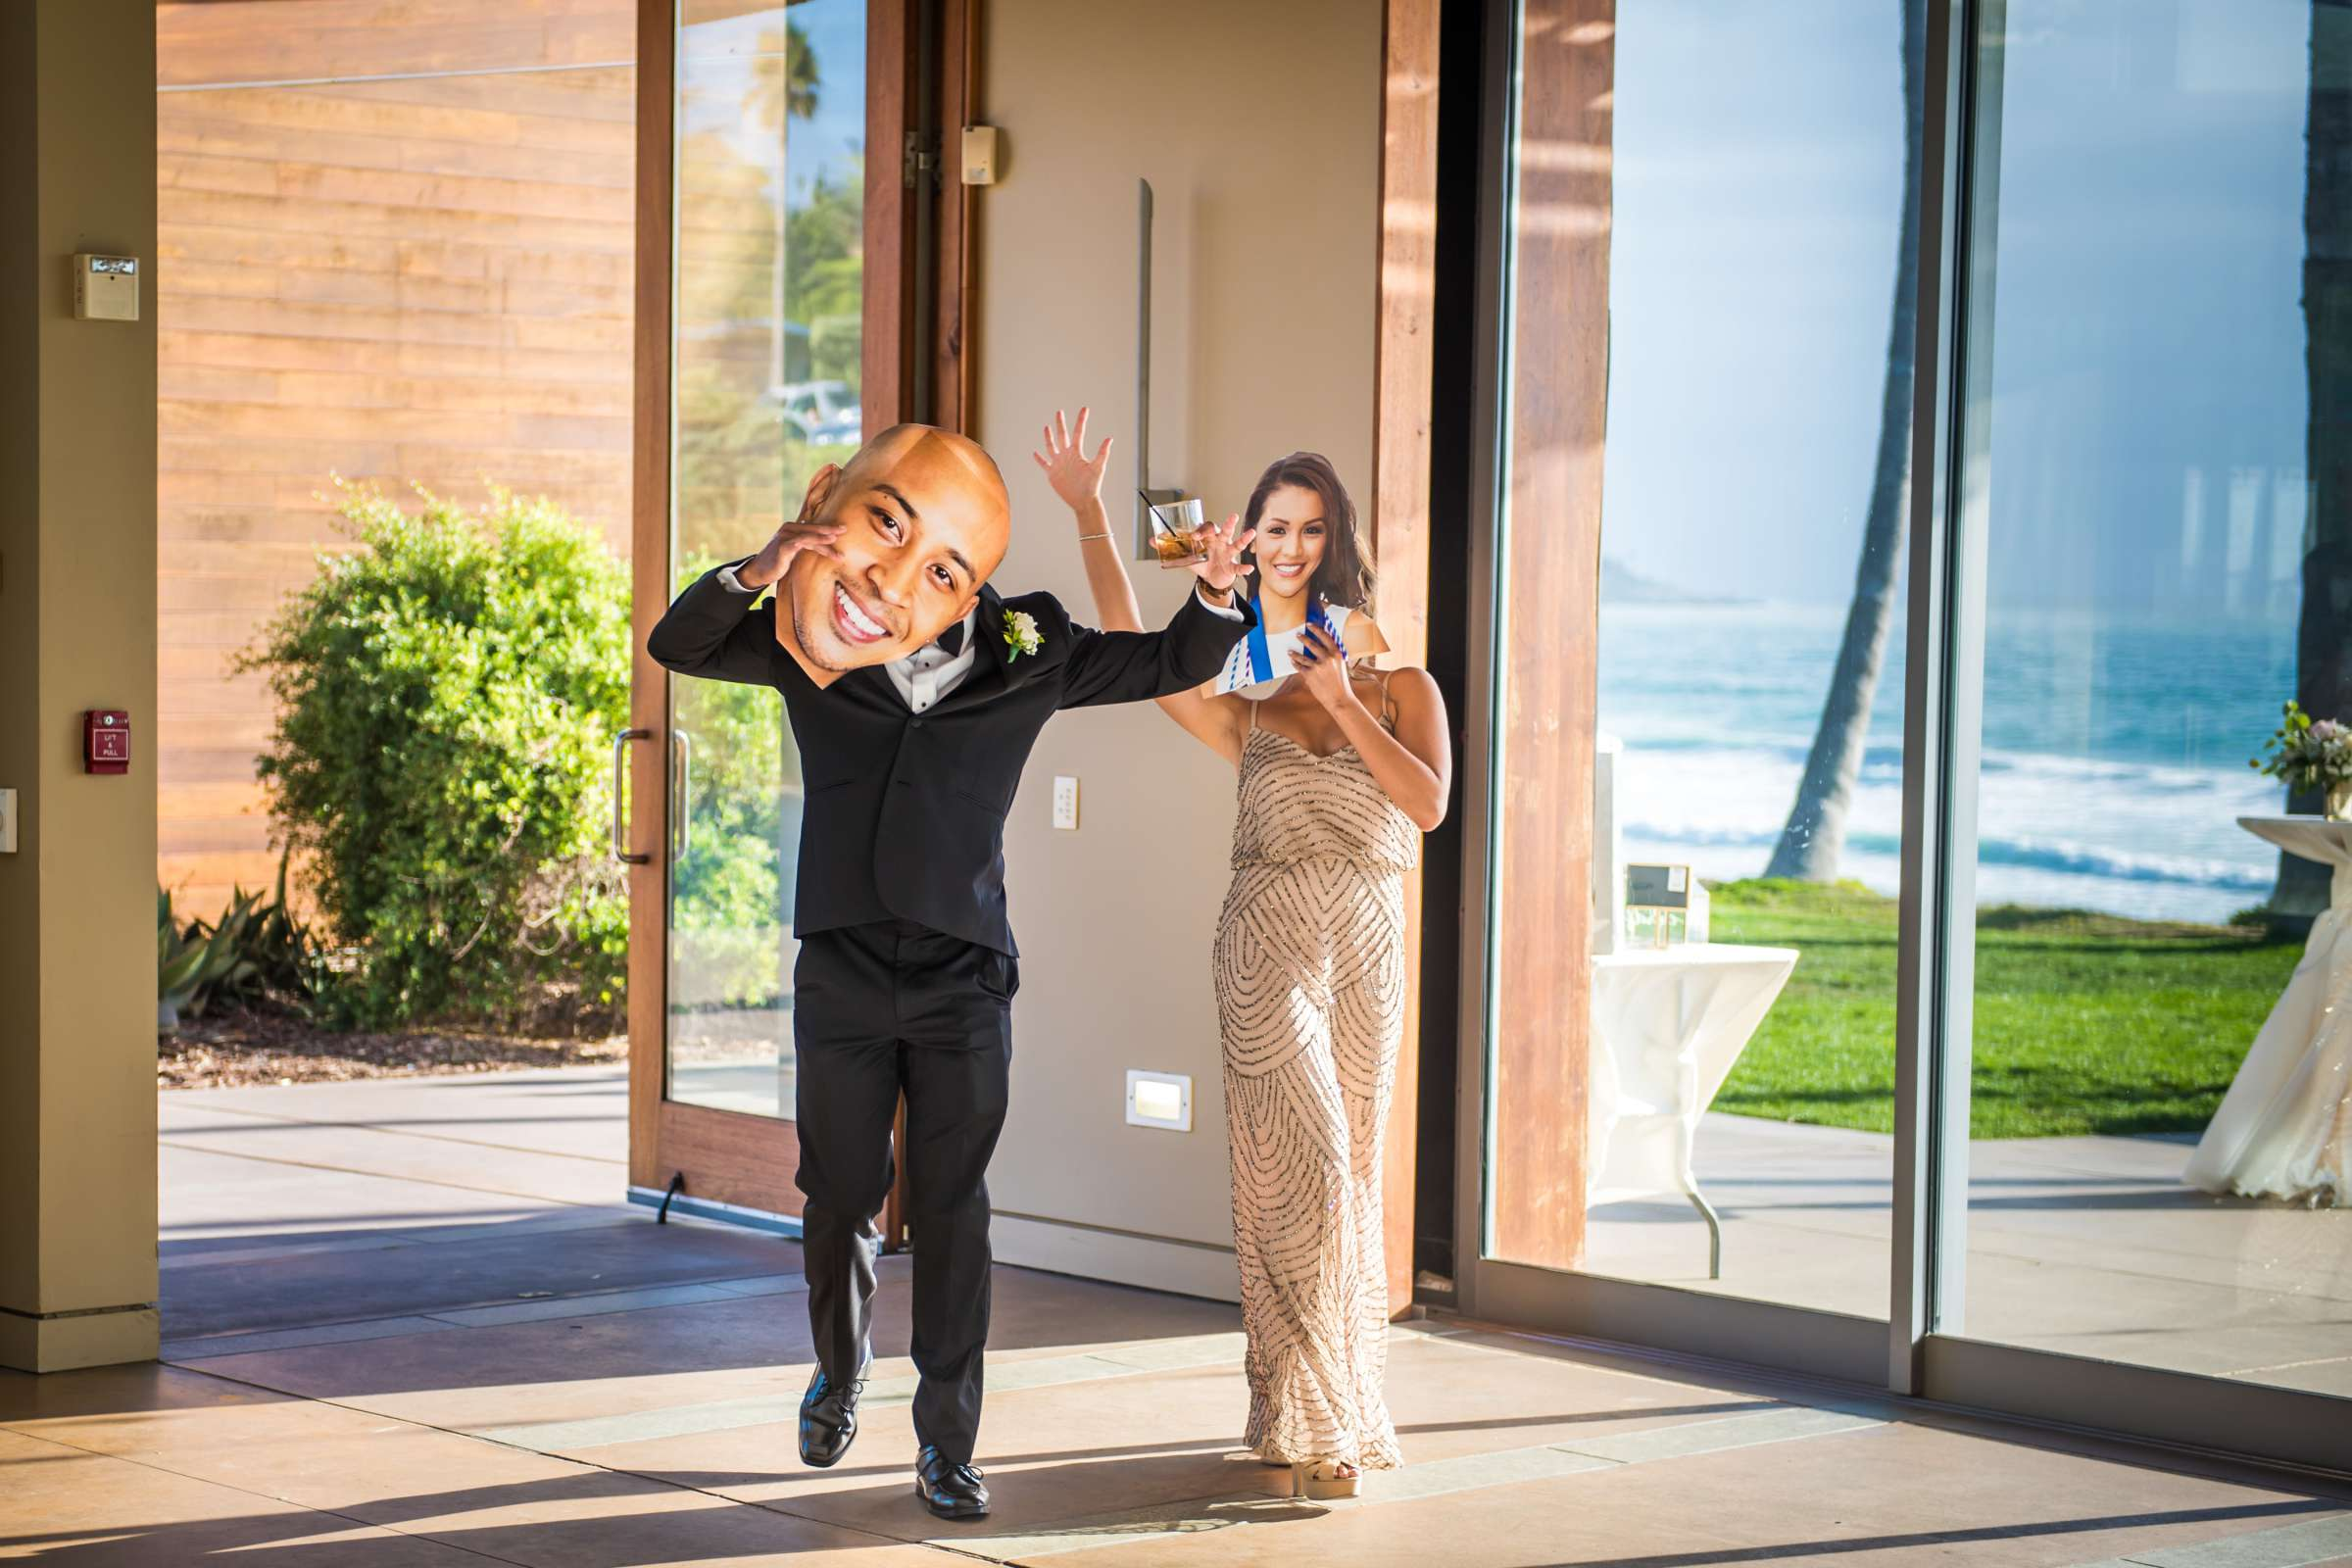 Scripps Seaside Forum Wedding coordinated by Lavish Weddings, Cindy and Justin Wedding Photo #381848 by True Photography